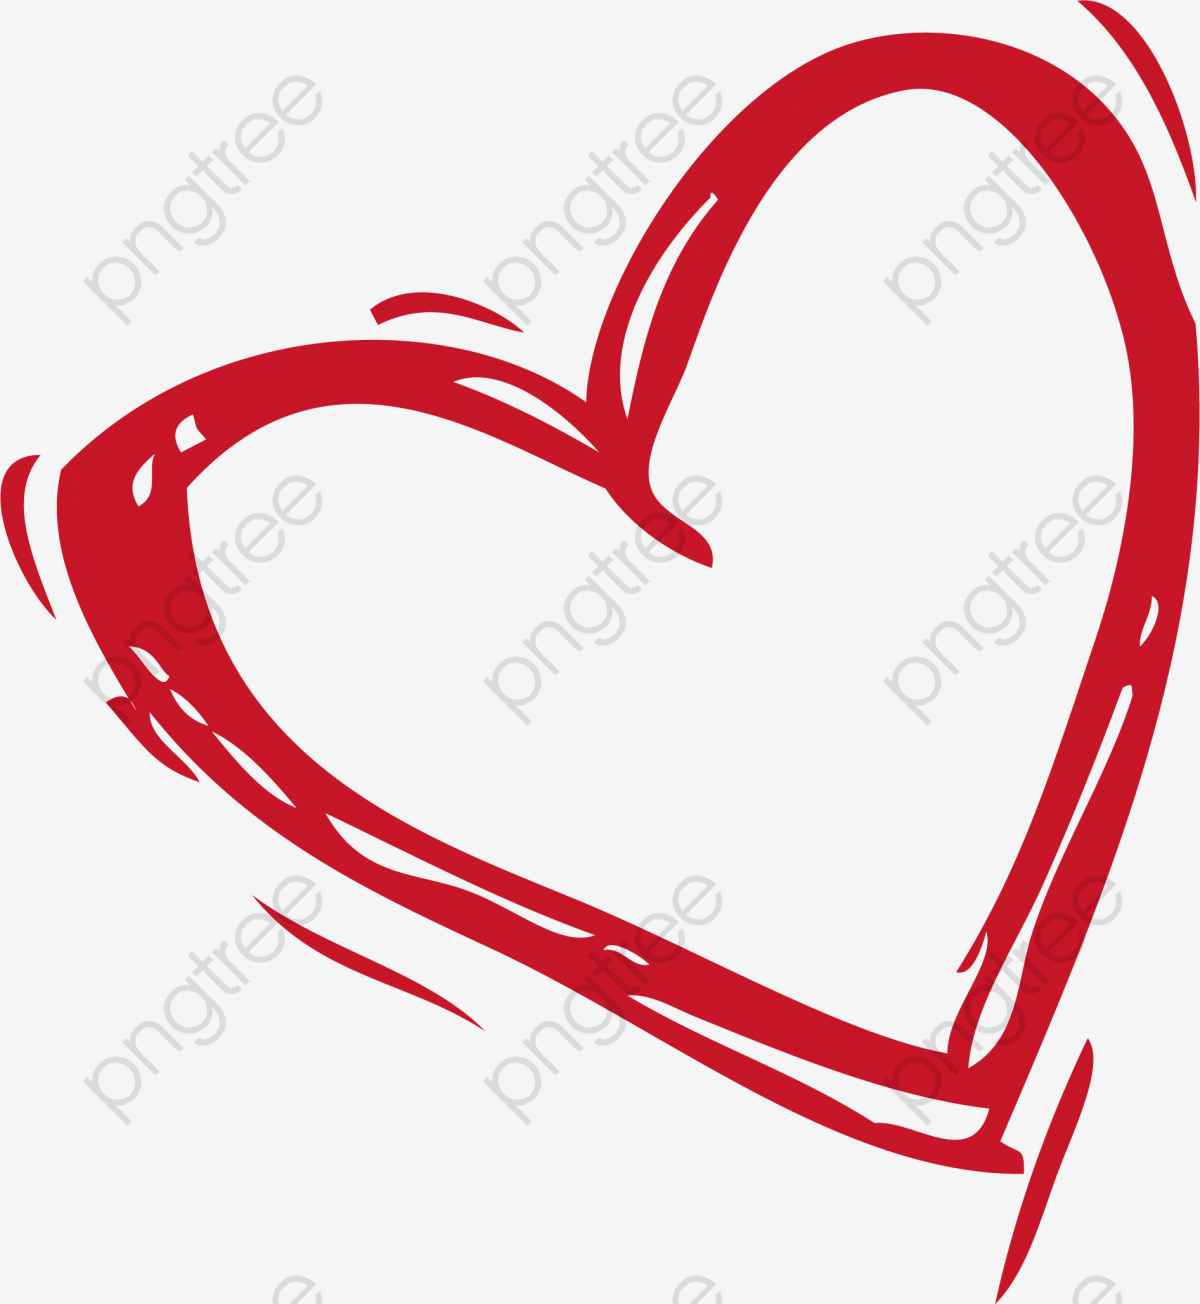 Hand Drawn Heart Shaped, Ink, Heart Shaped, Heart Brush PNG and.